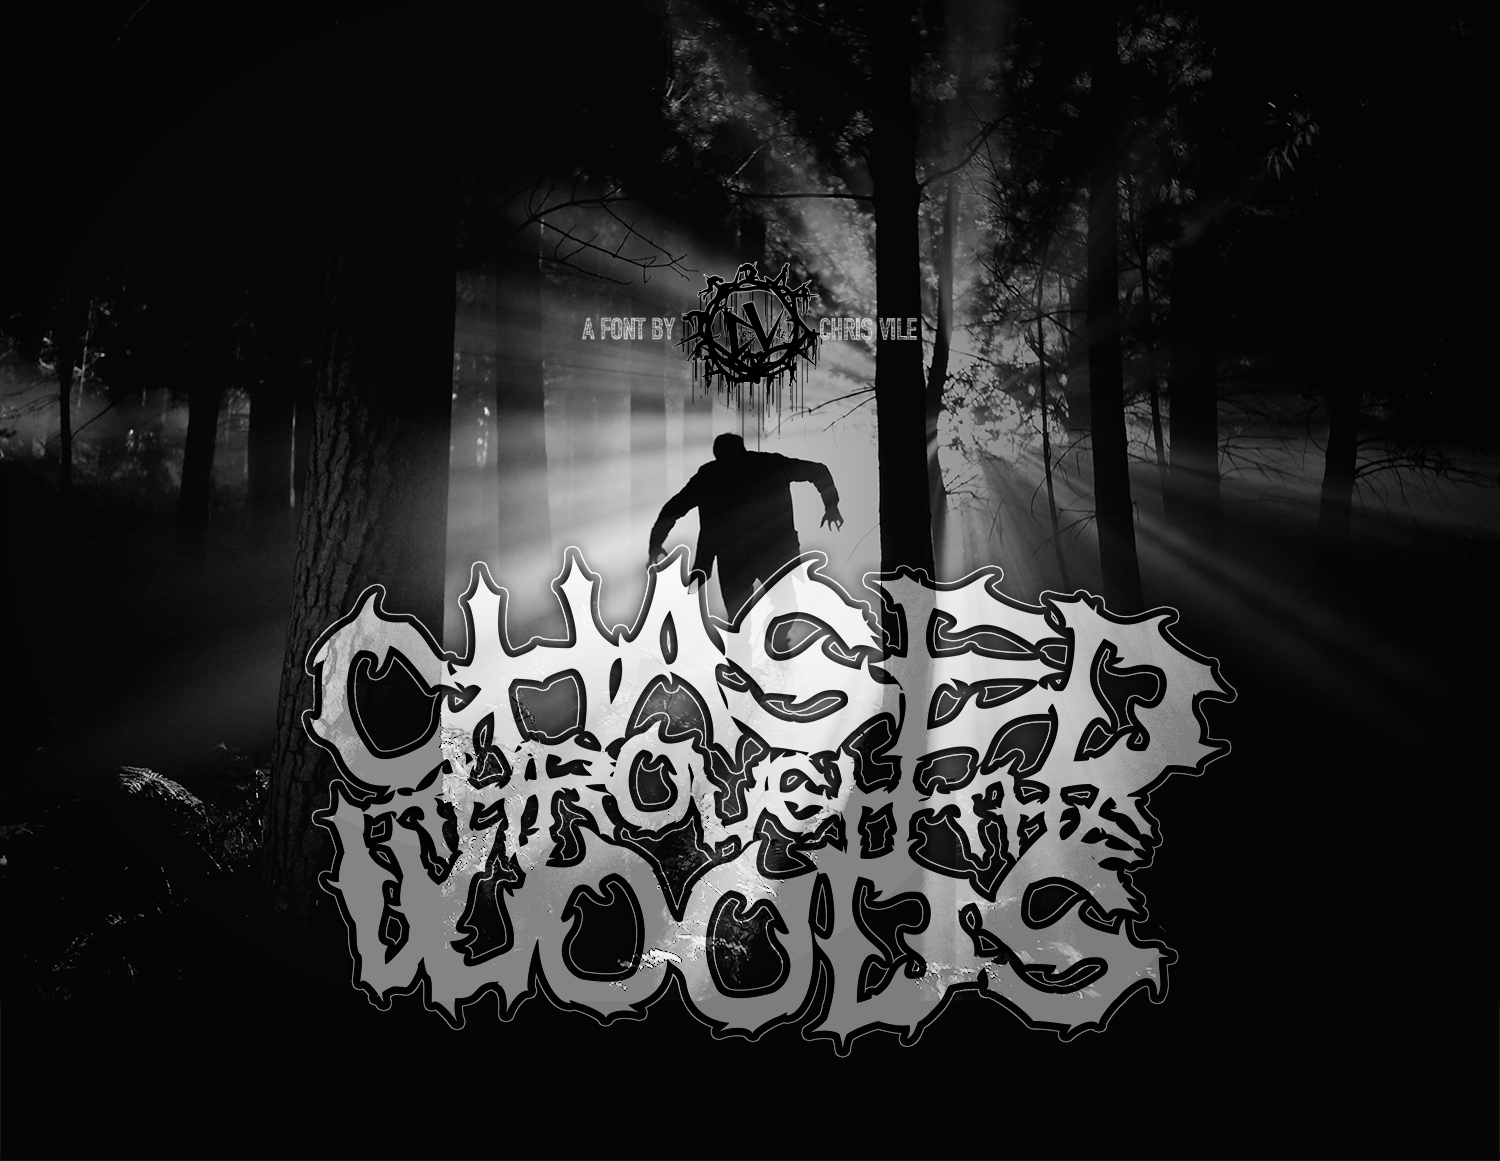 Chased Through The Woods